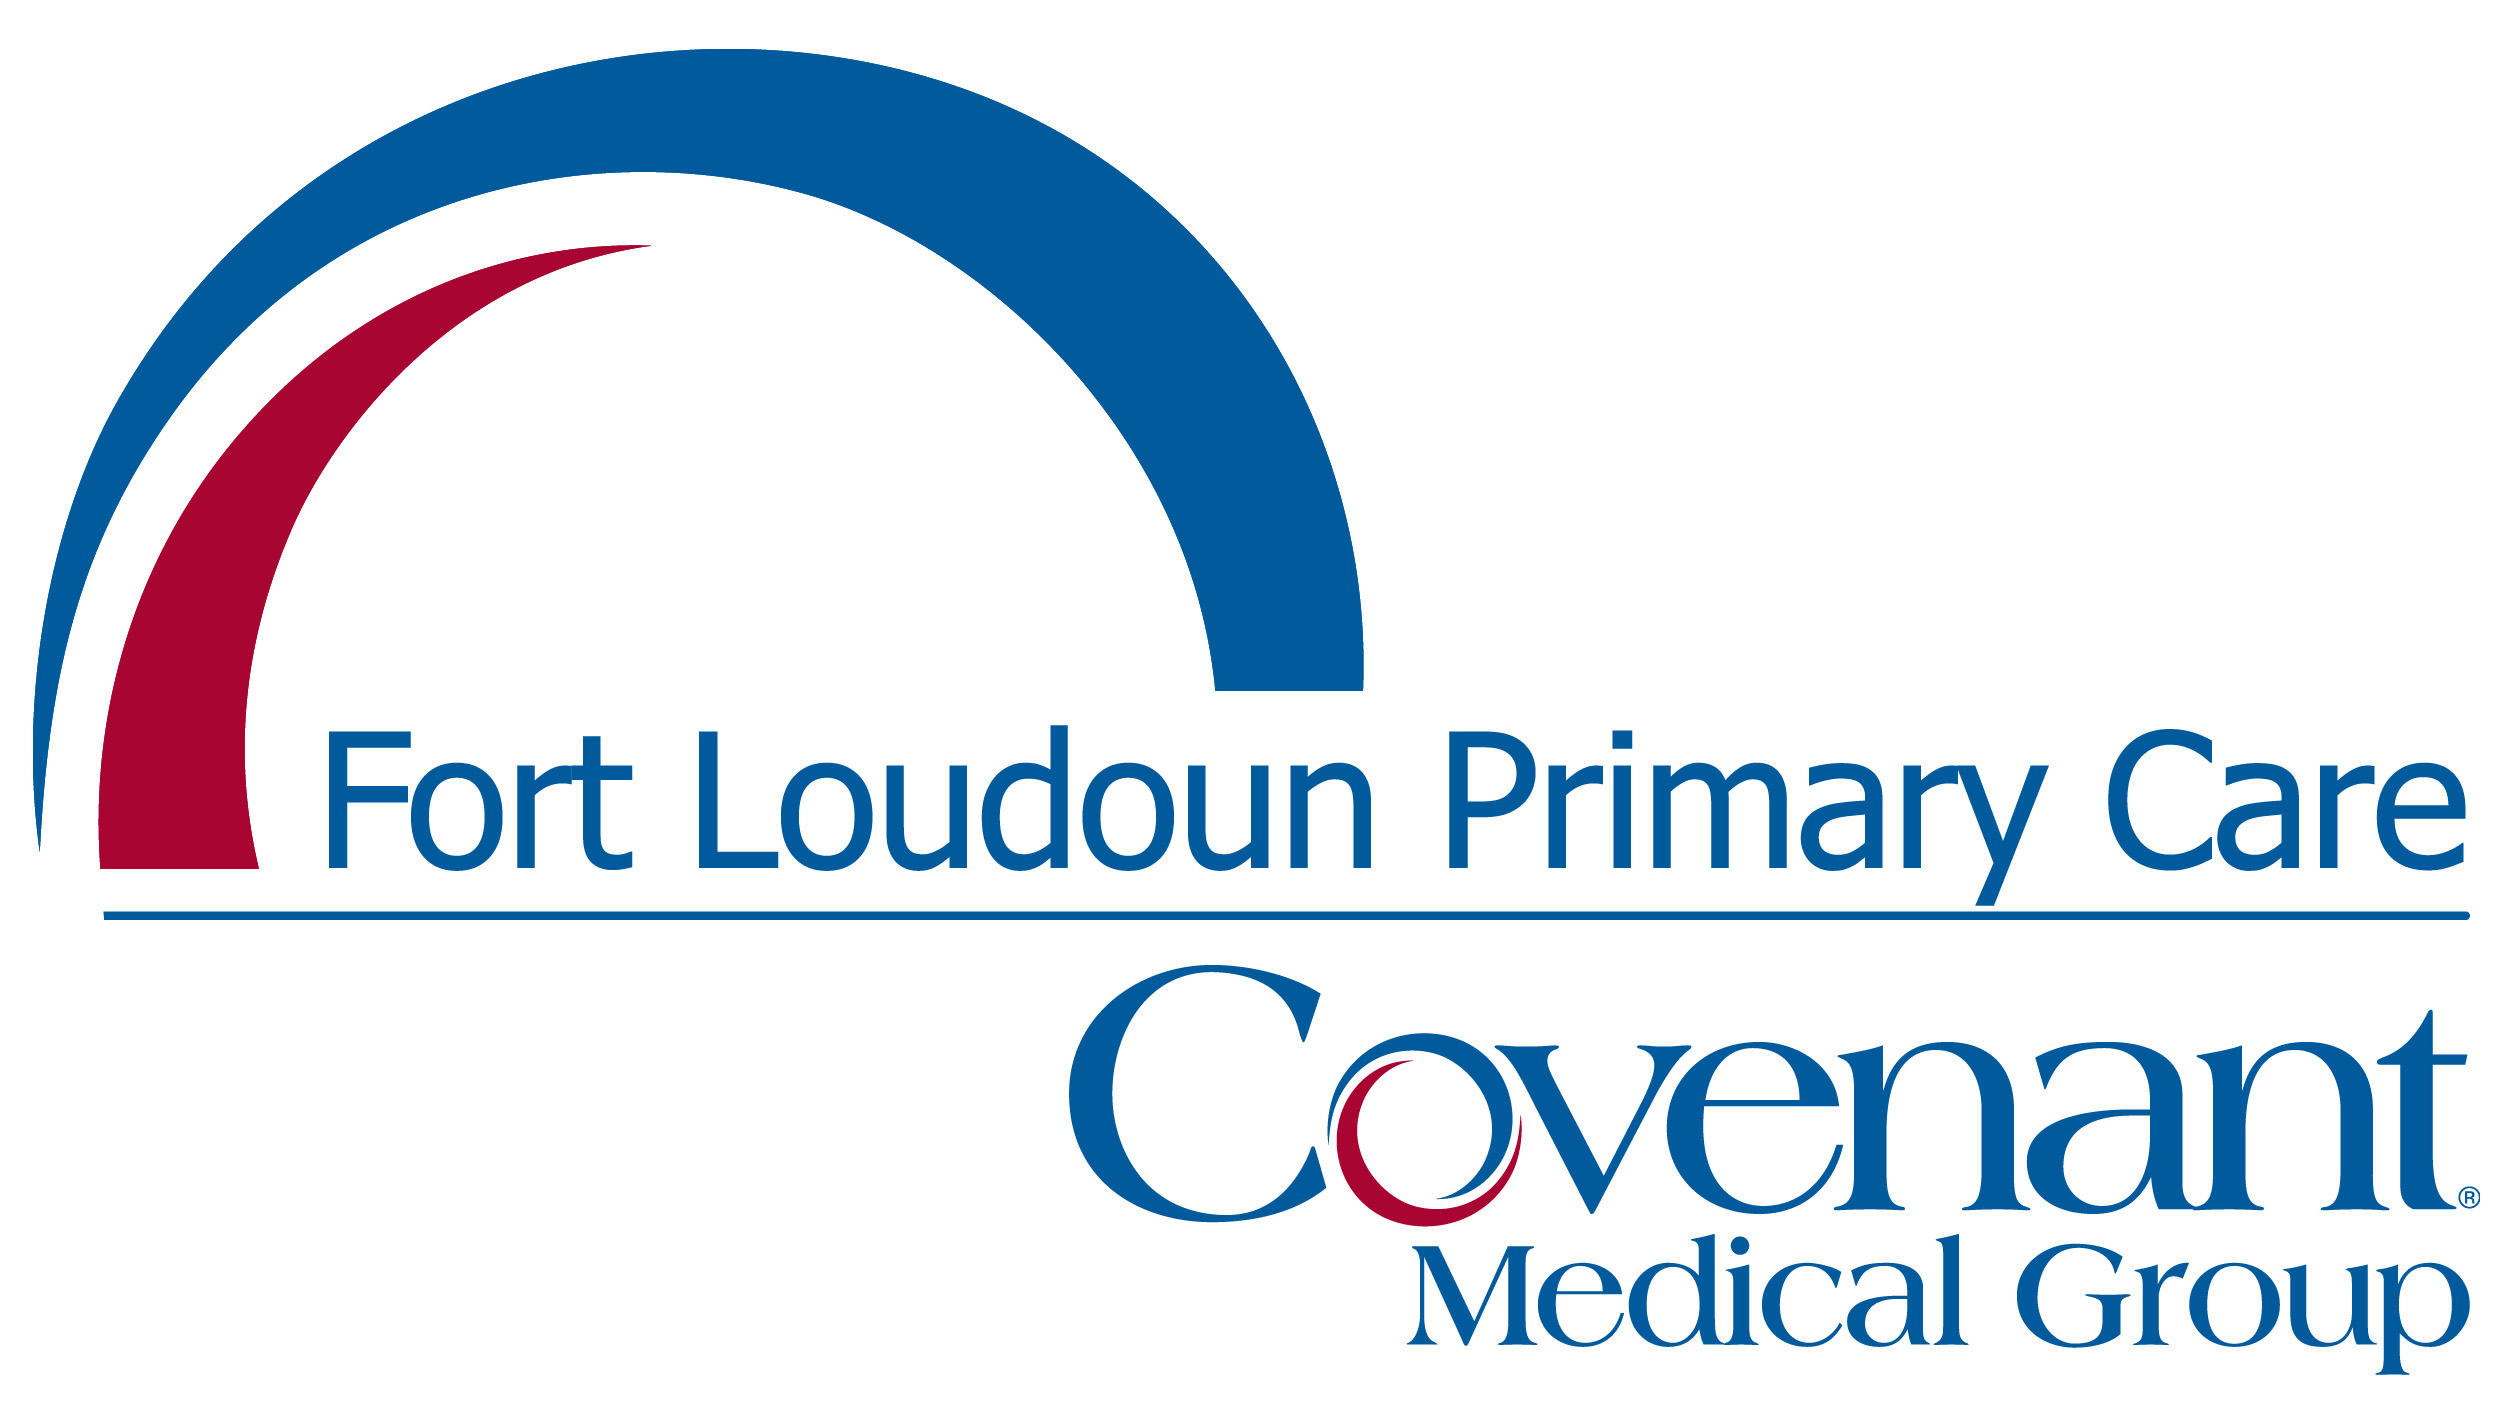 Fort Loudoun Primary Care